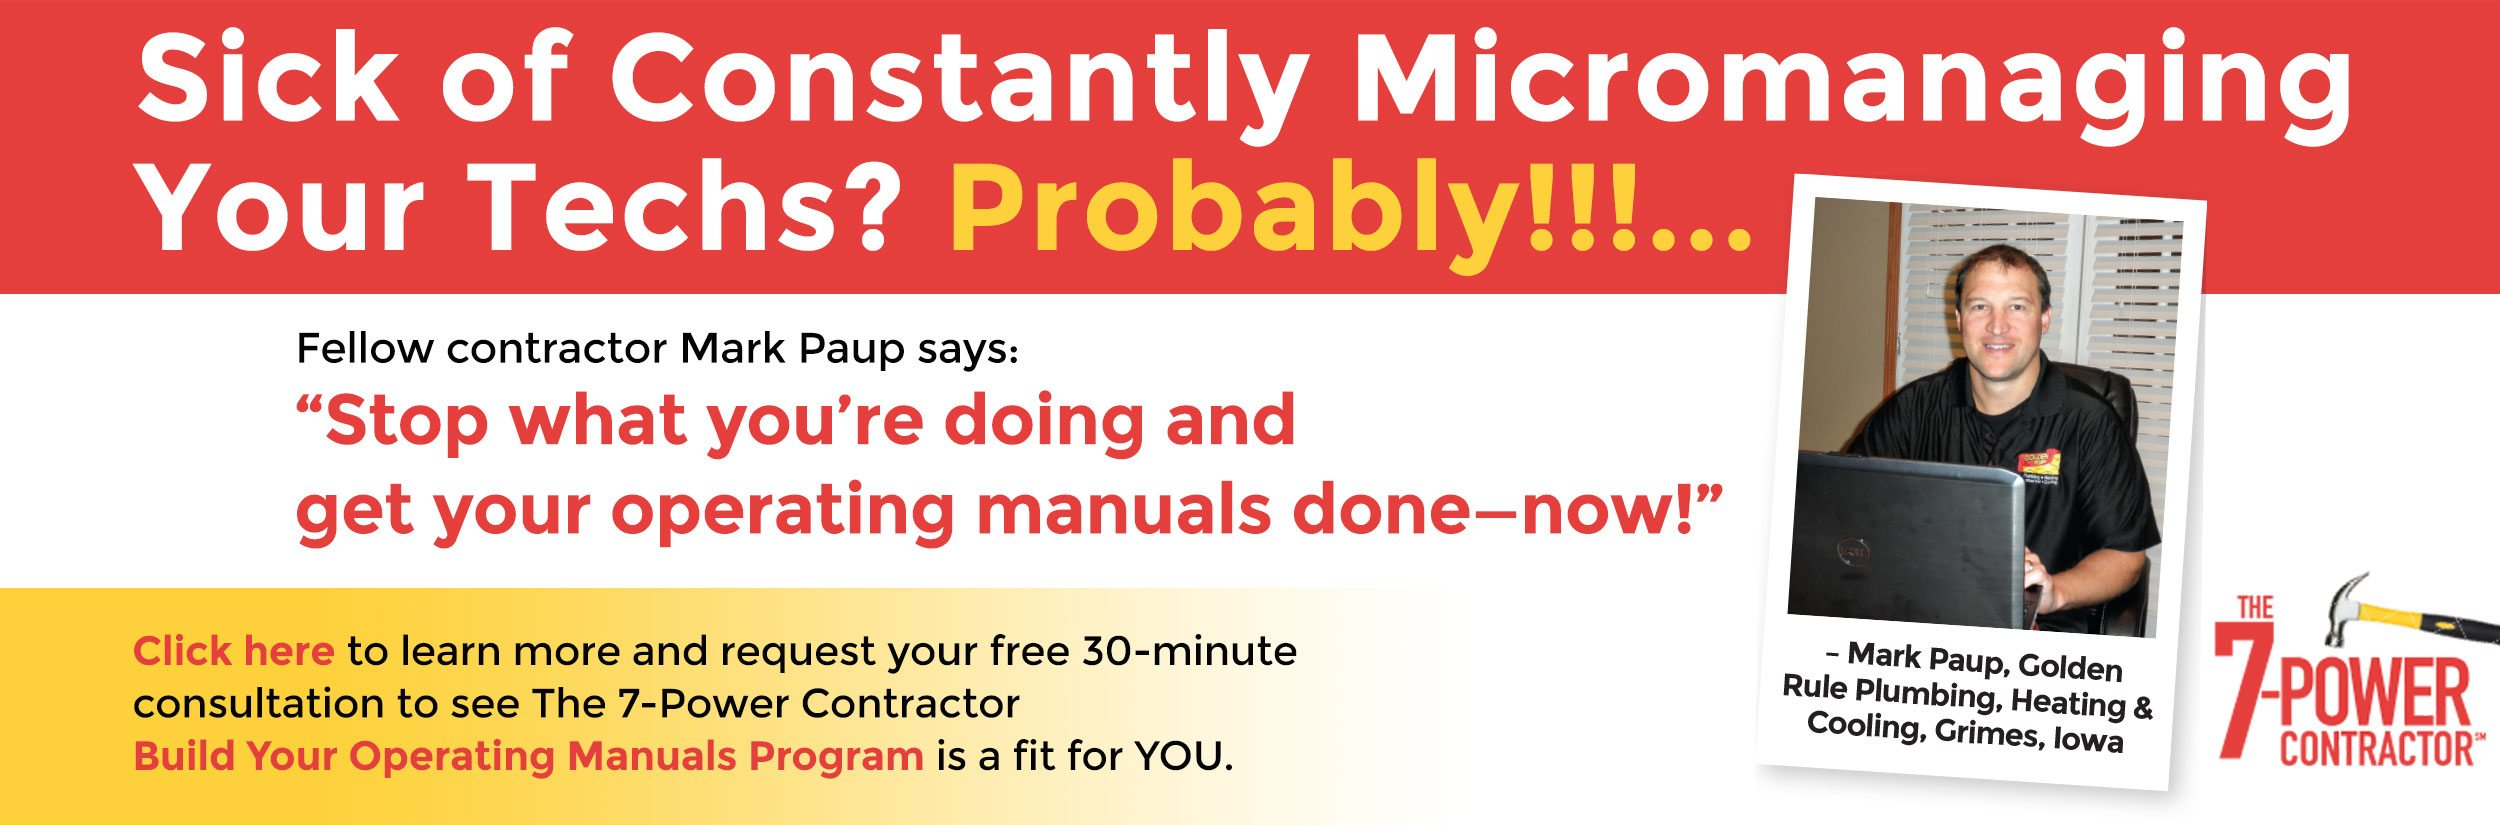 Stop what you're doing and get your operating manuals done - now!